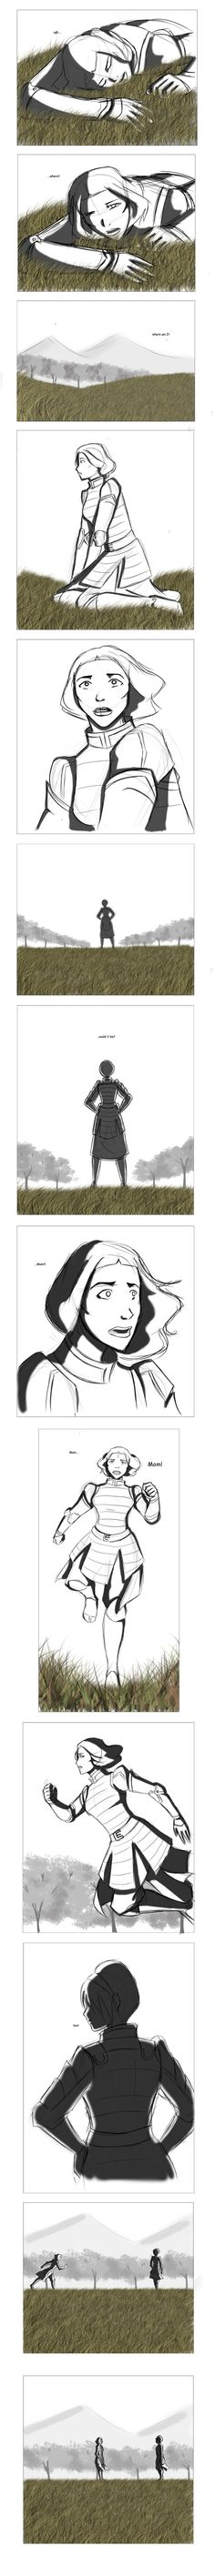 PART 1 - Knowing Destiny - by ~mizzizabellaSMS on deviantART Click pin so you can read what the comic says